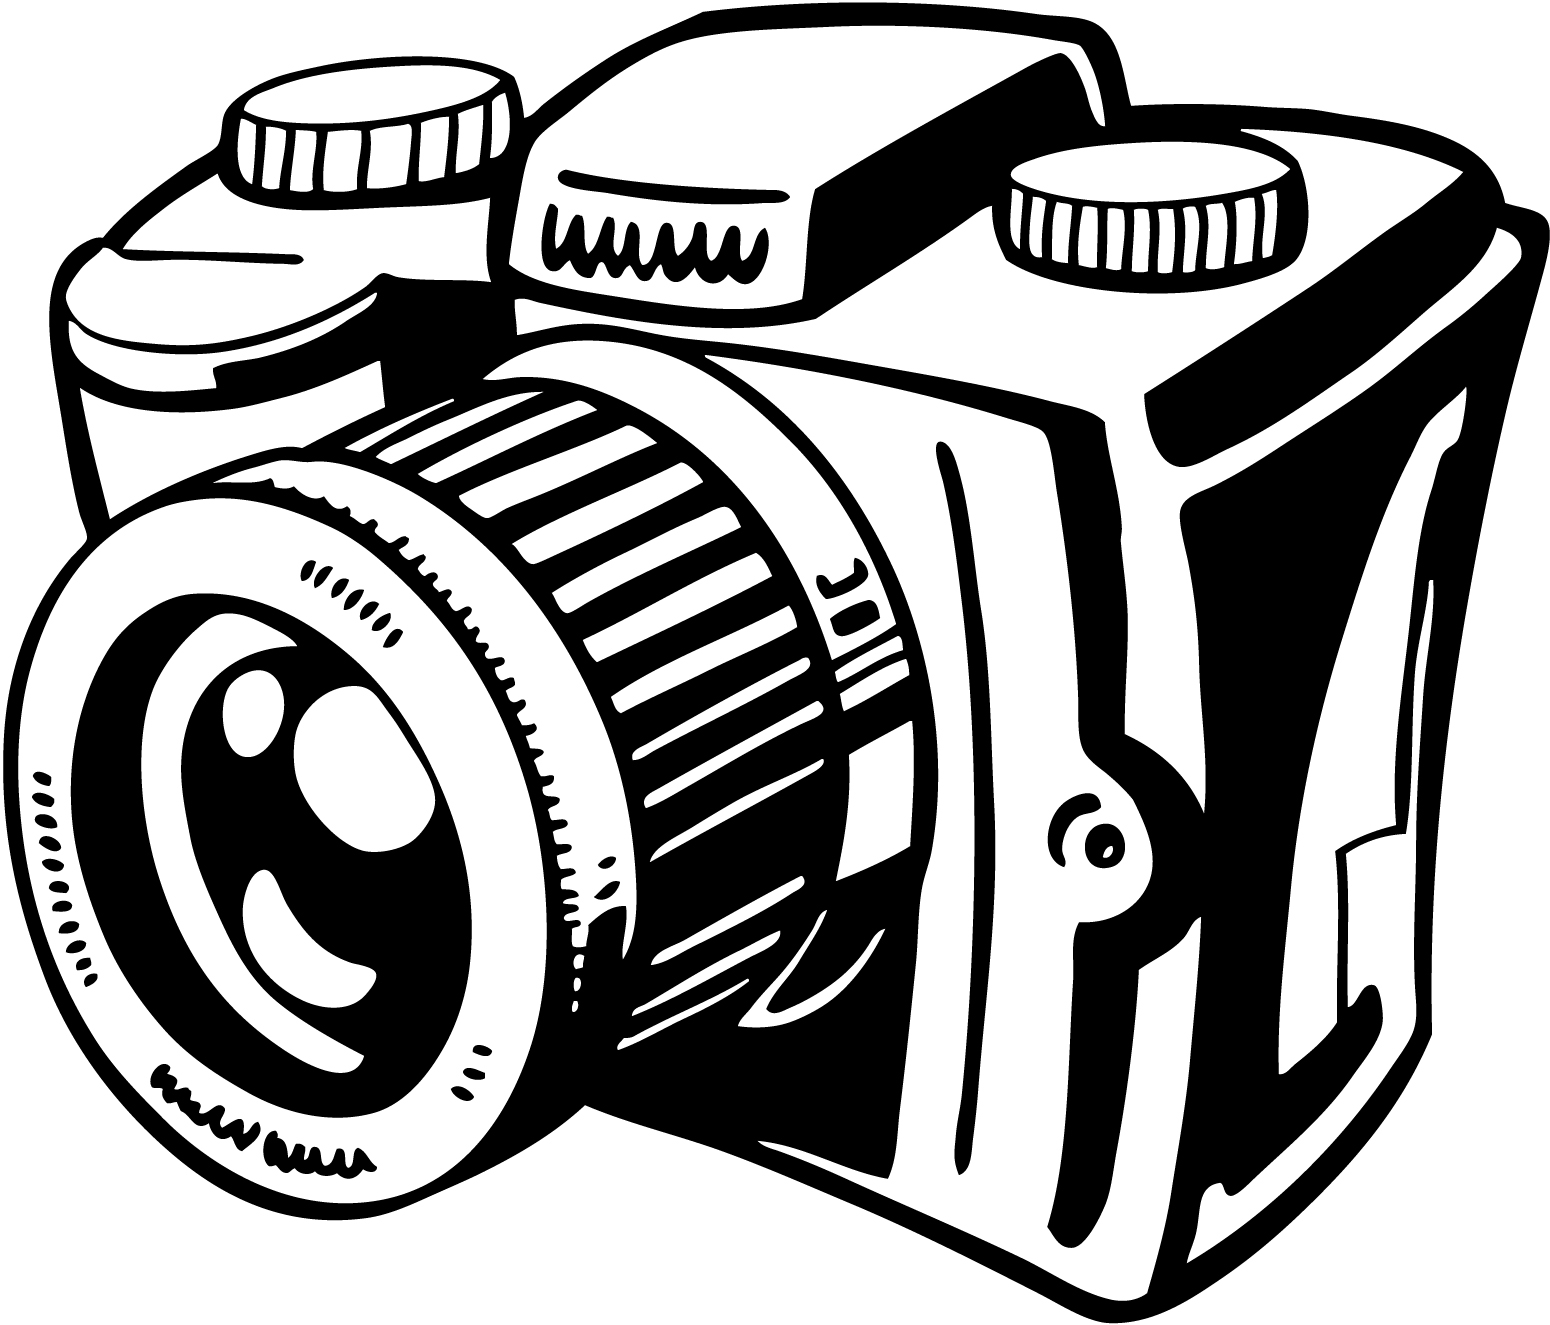 1550x1325 Simple Camera Clipart Black And White